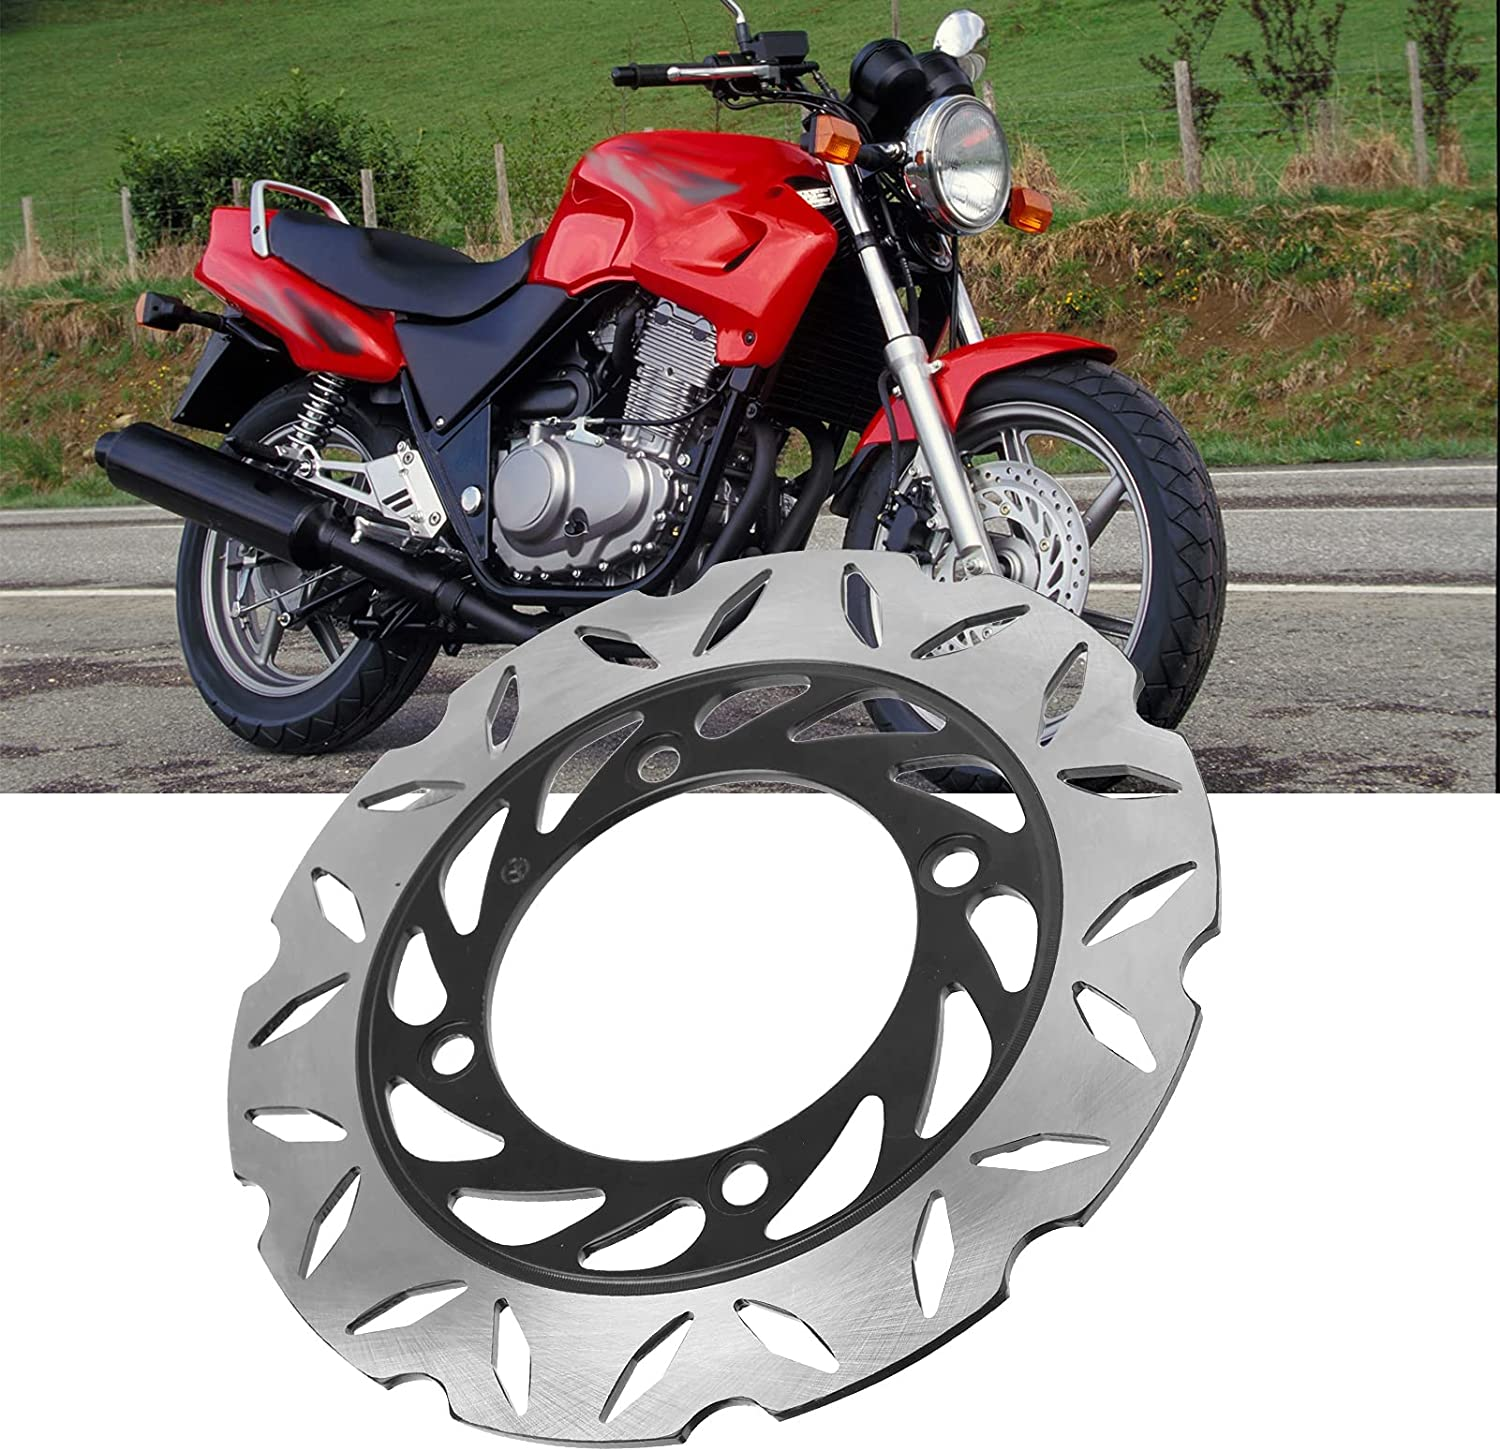 Motorcycle Rear Brake shipfree Rotor Recommended Disc Ro